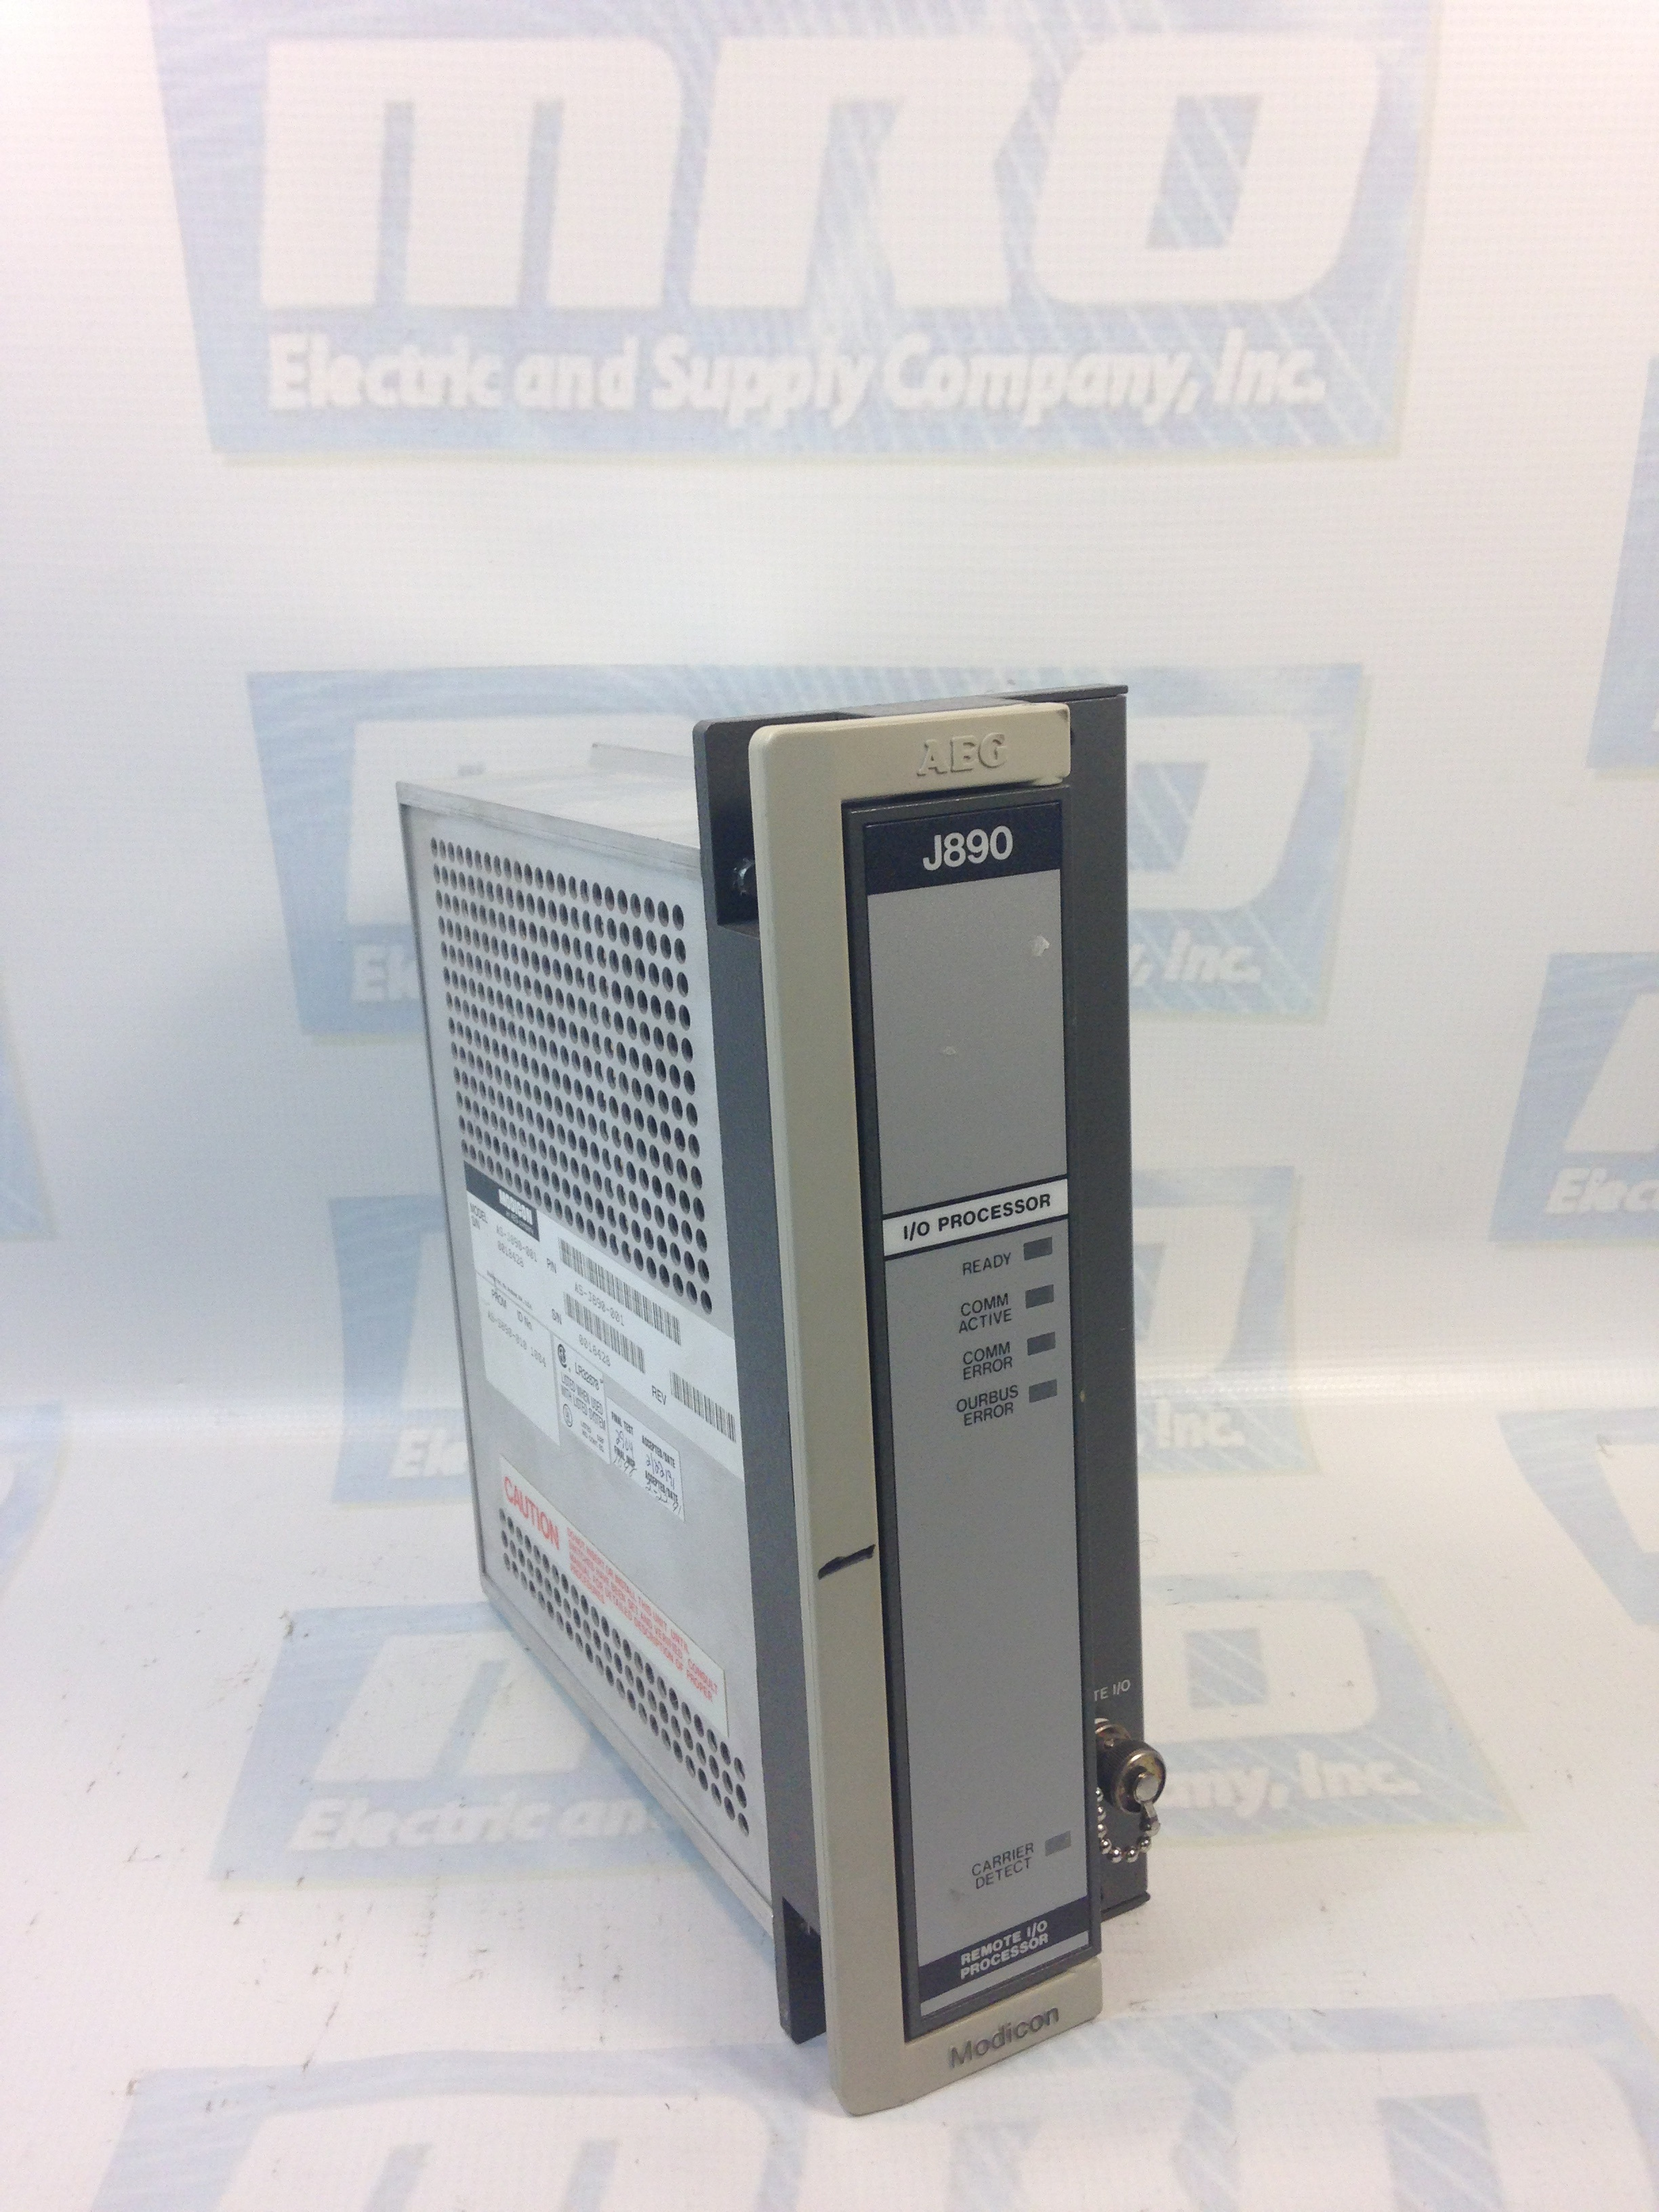 AS-J890-001 - Modicon 984 Series 984